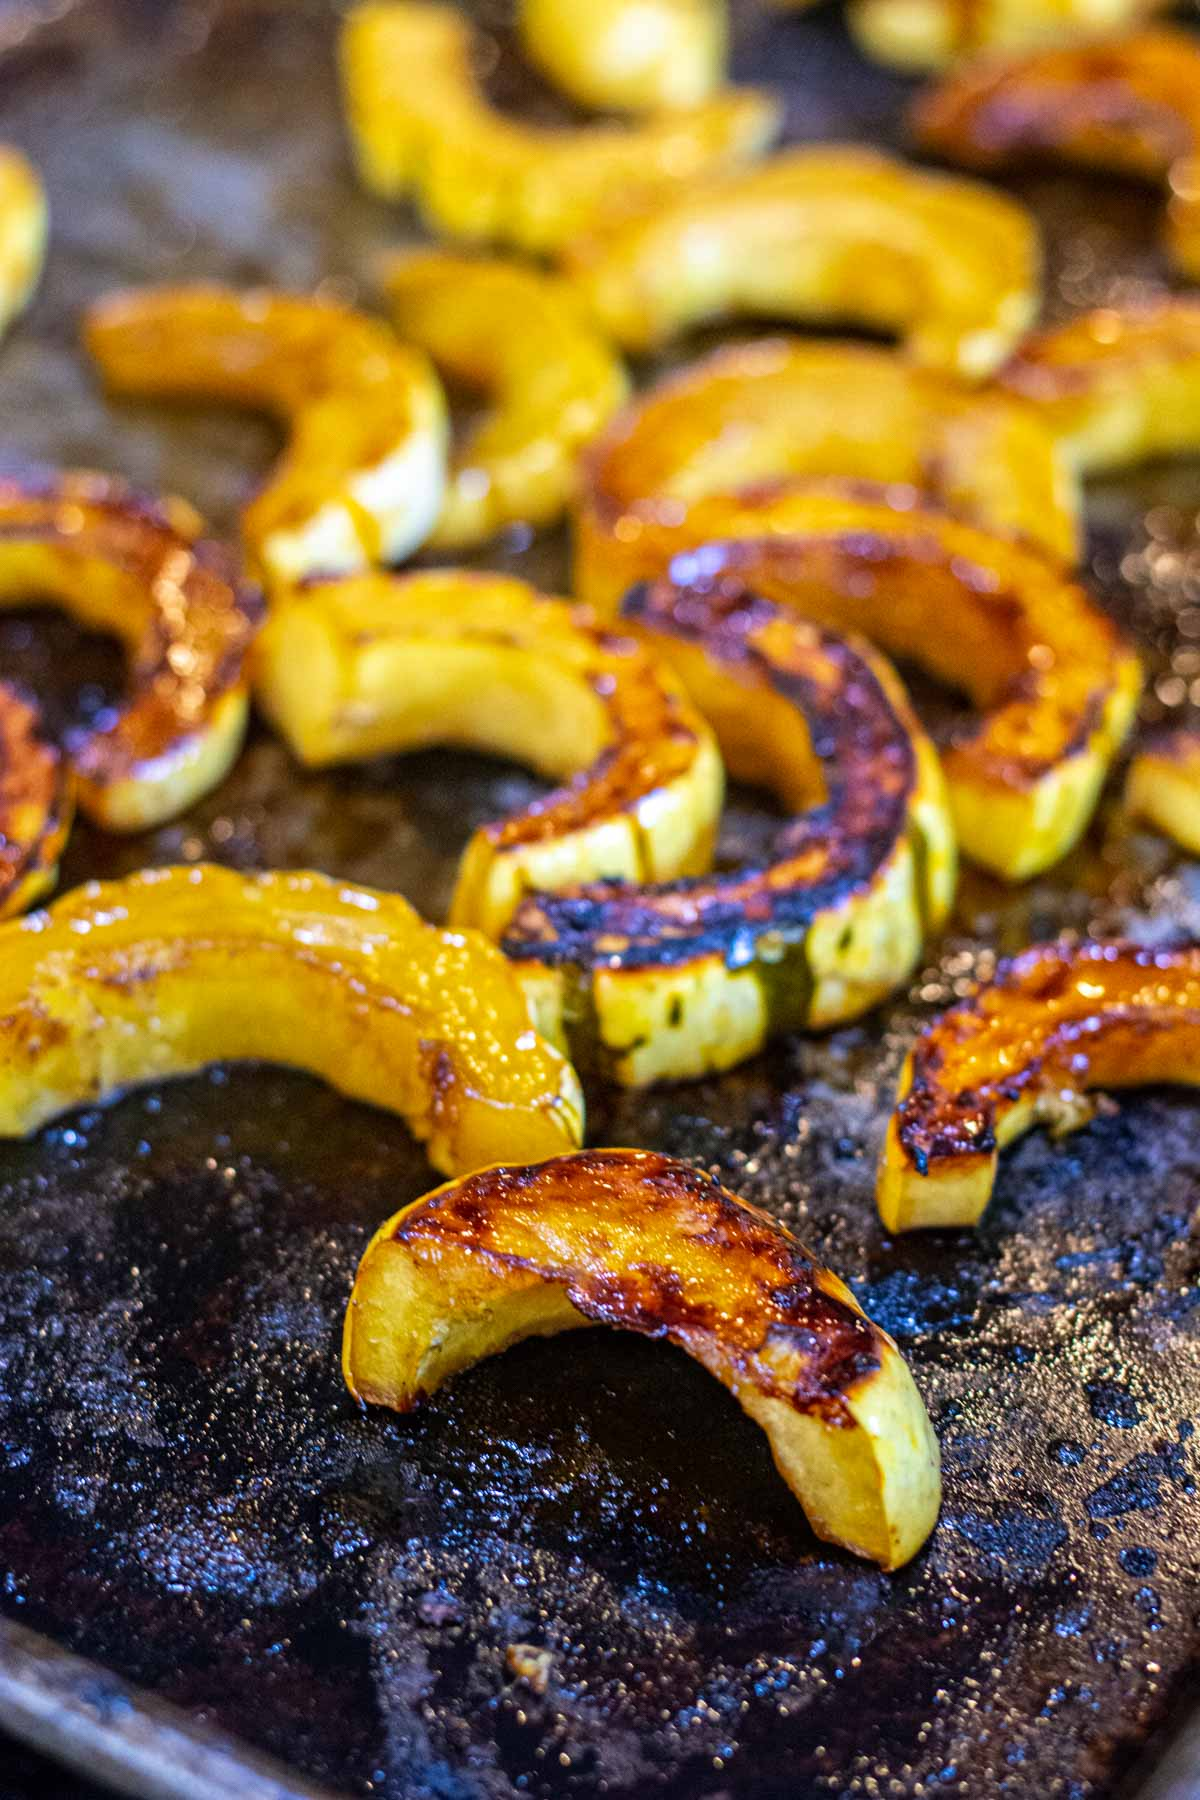 sheet pan with squash rings turned over so you can see the caramelization.